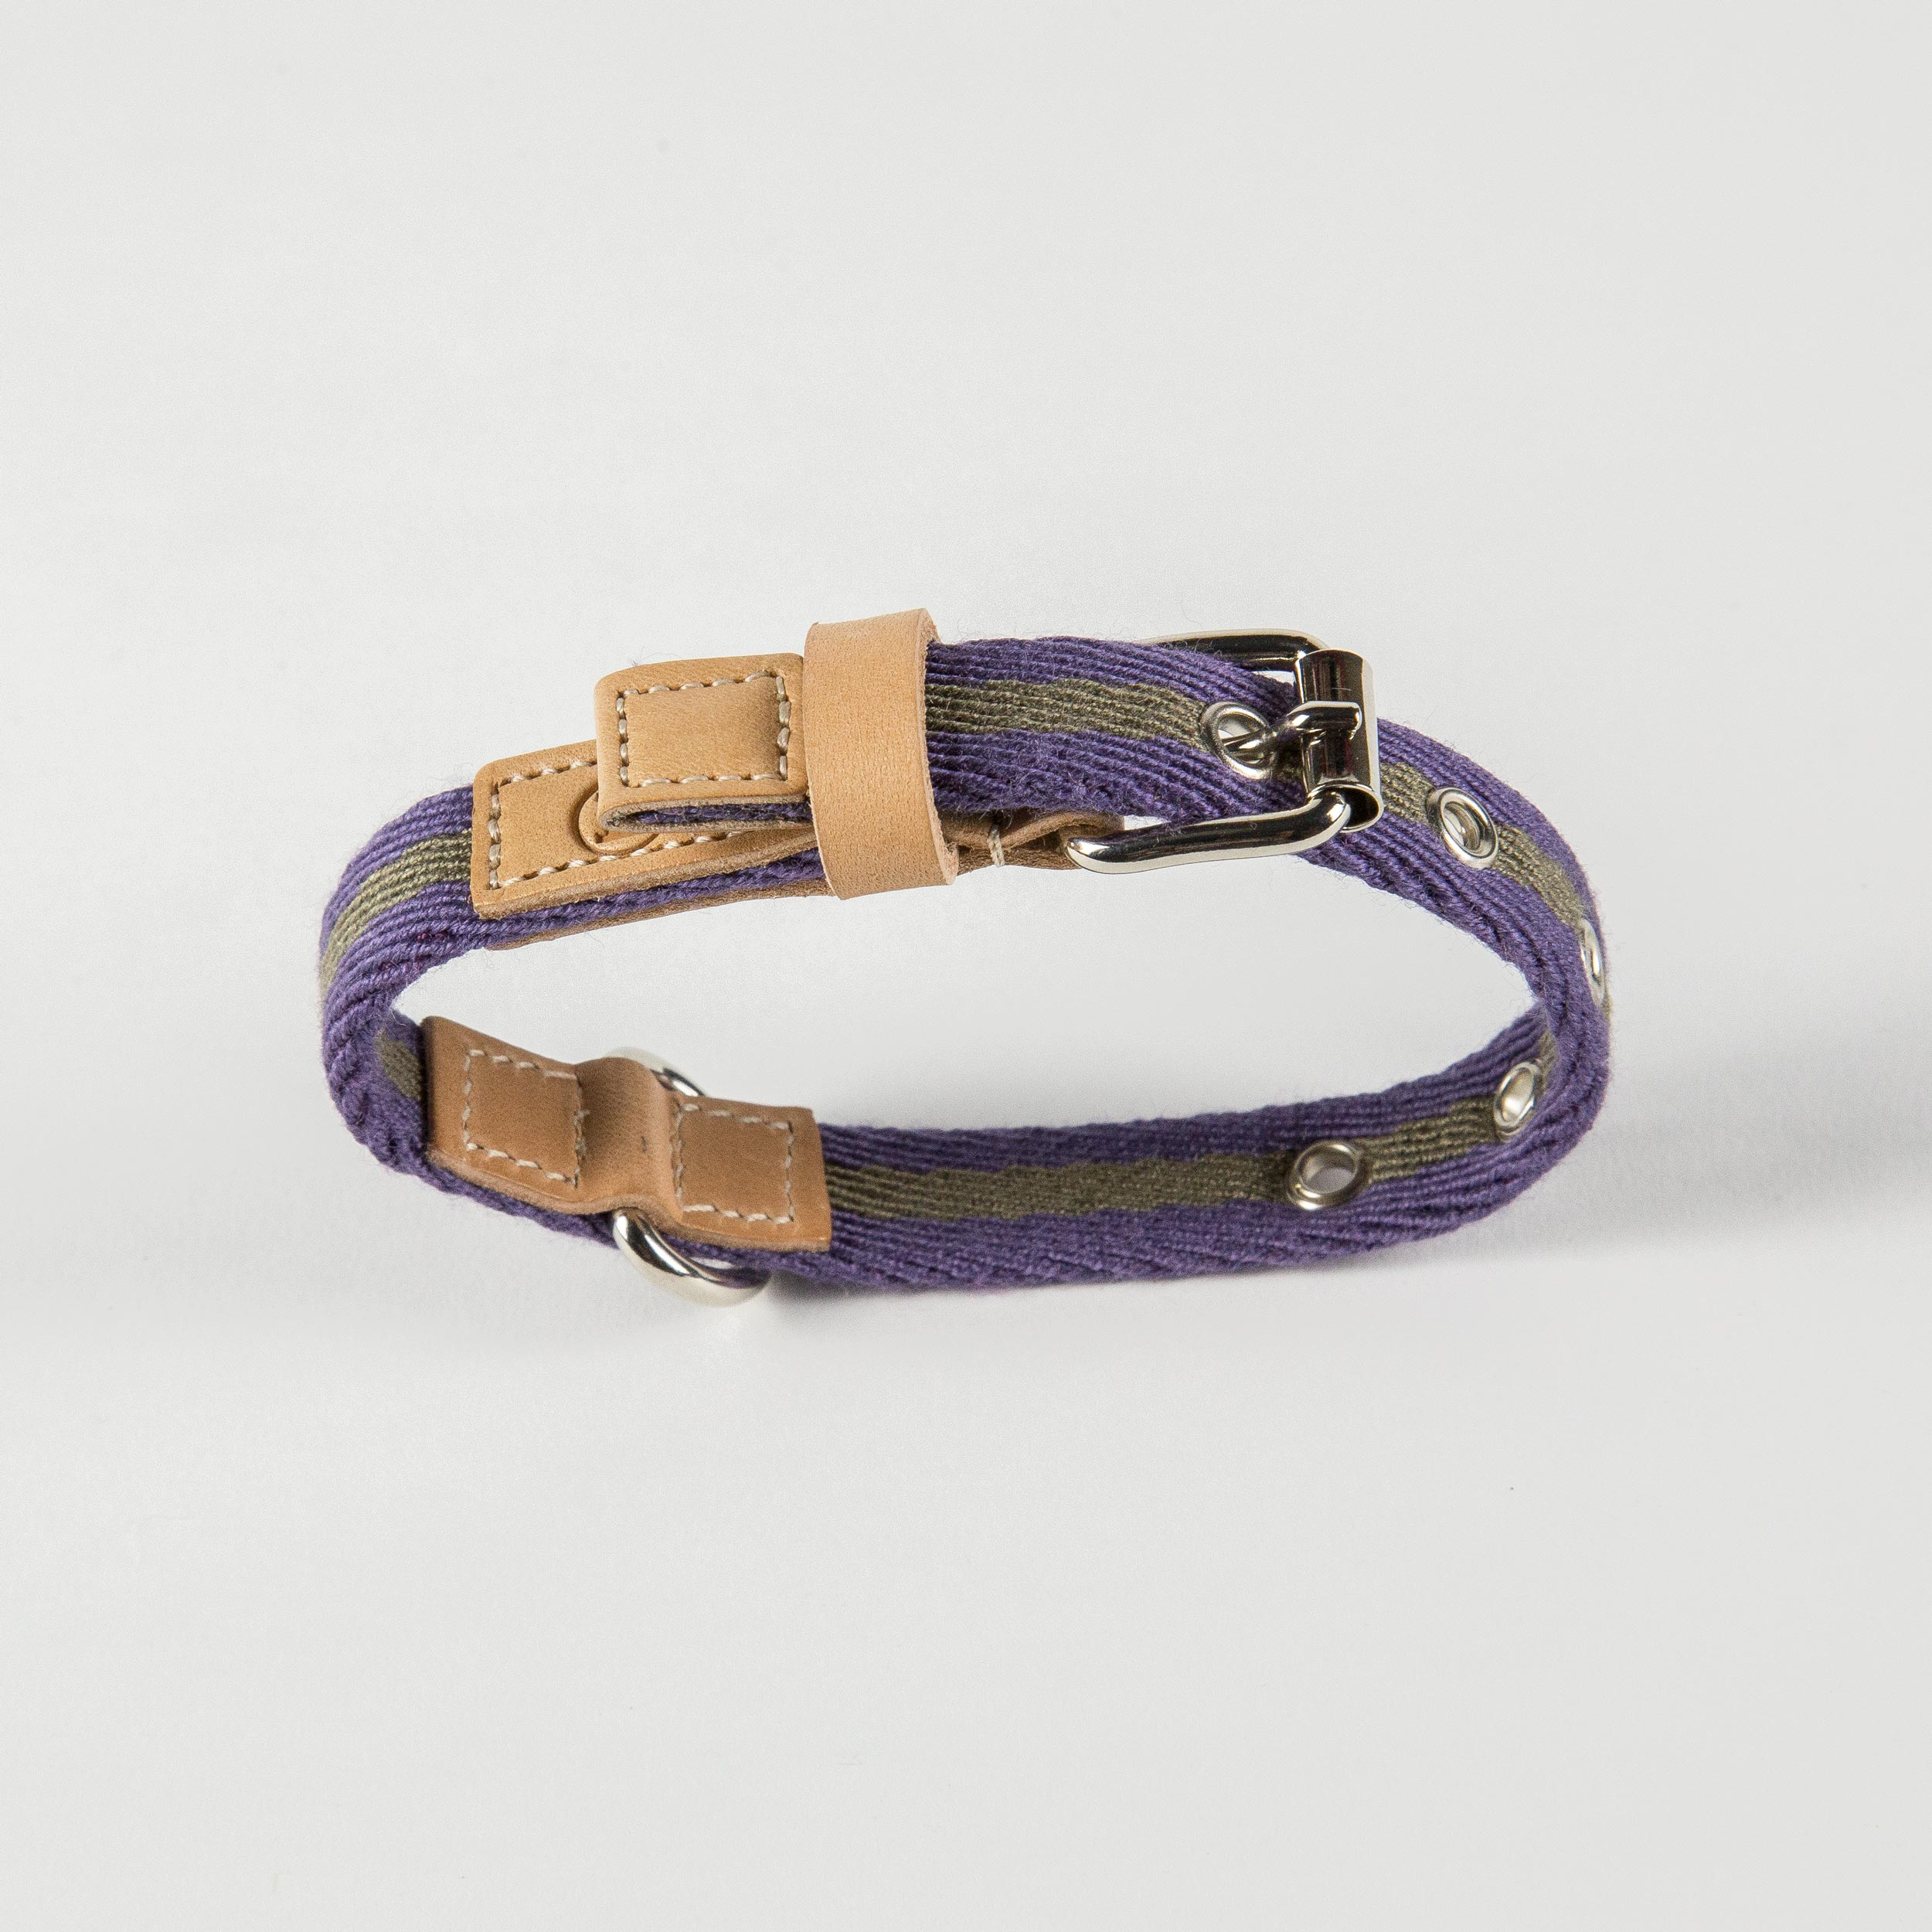 collar for dogs in lilac/sand fabric and leather